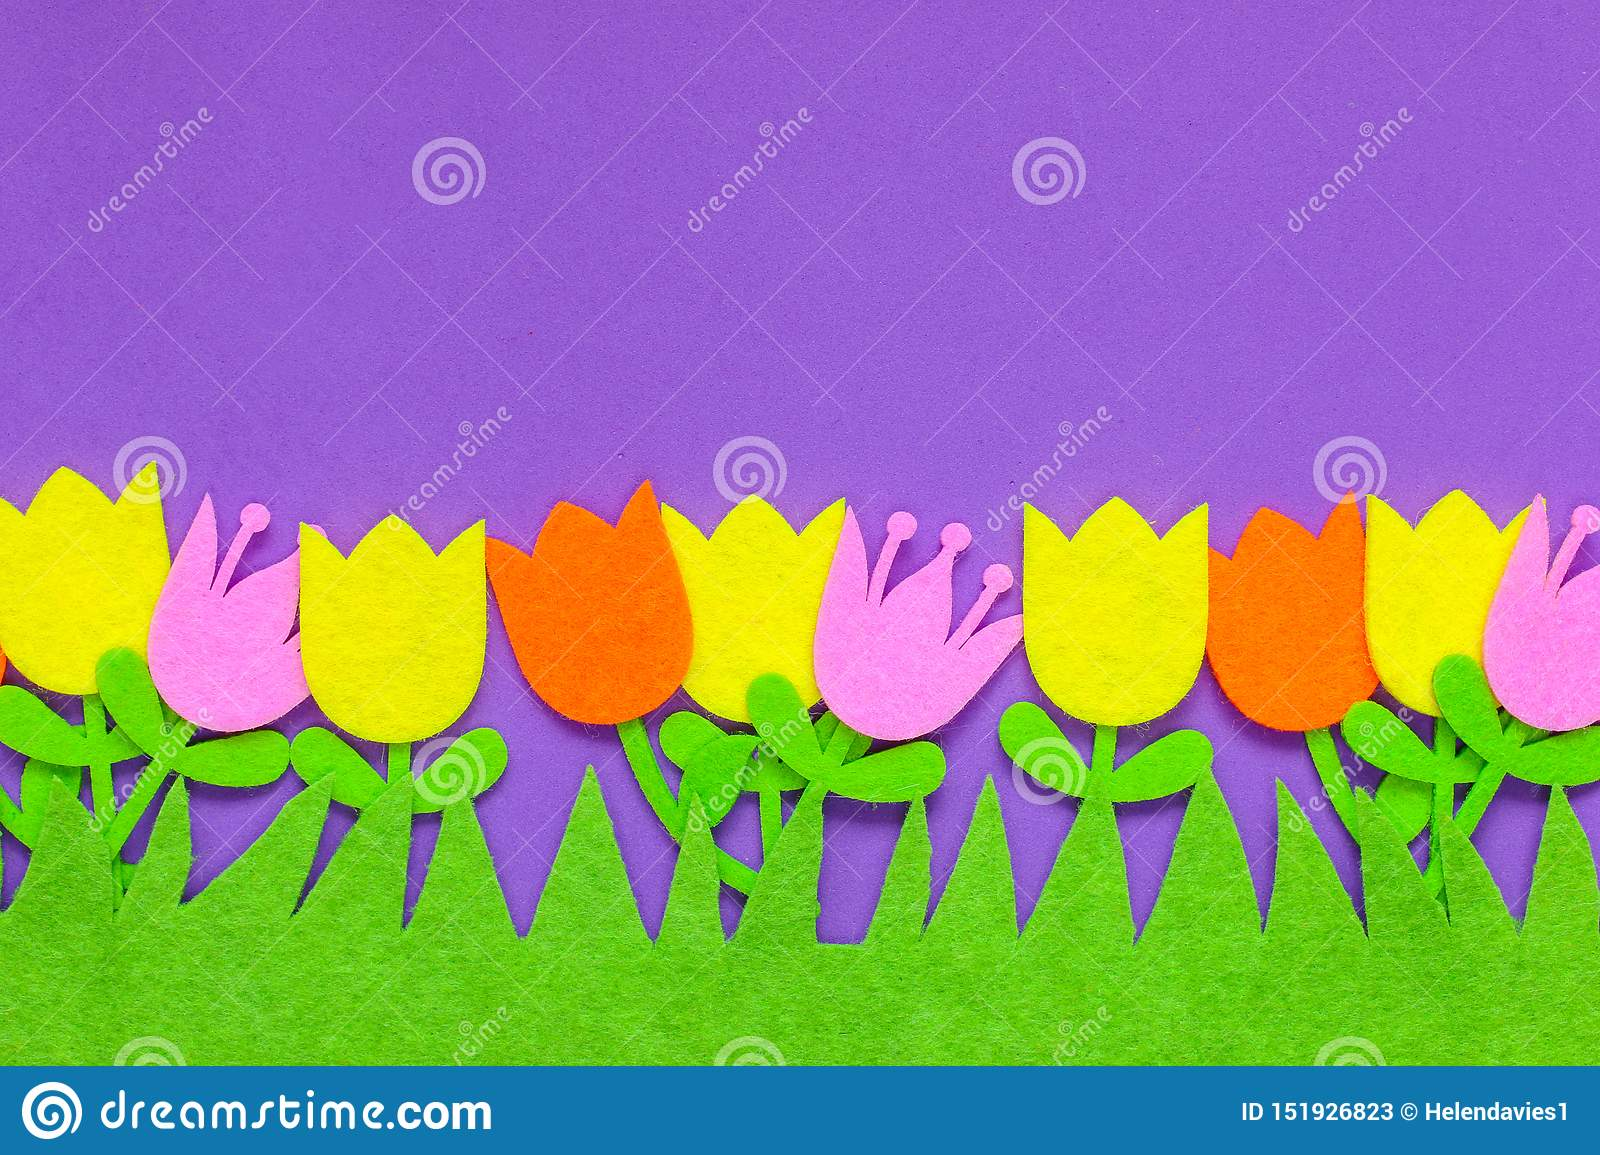 Brightly colored felt tulip flowers on a plain background